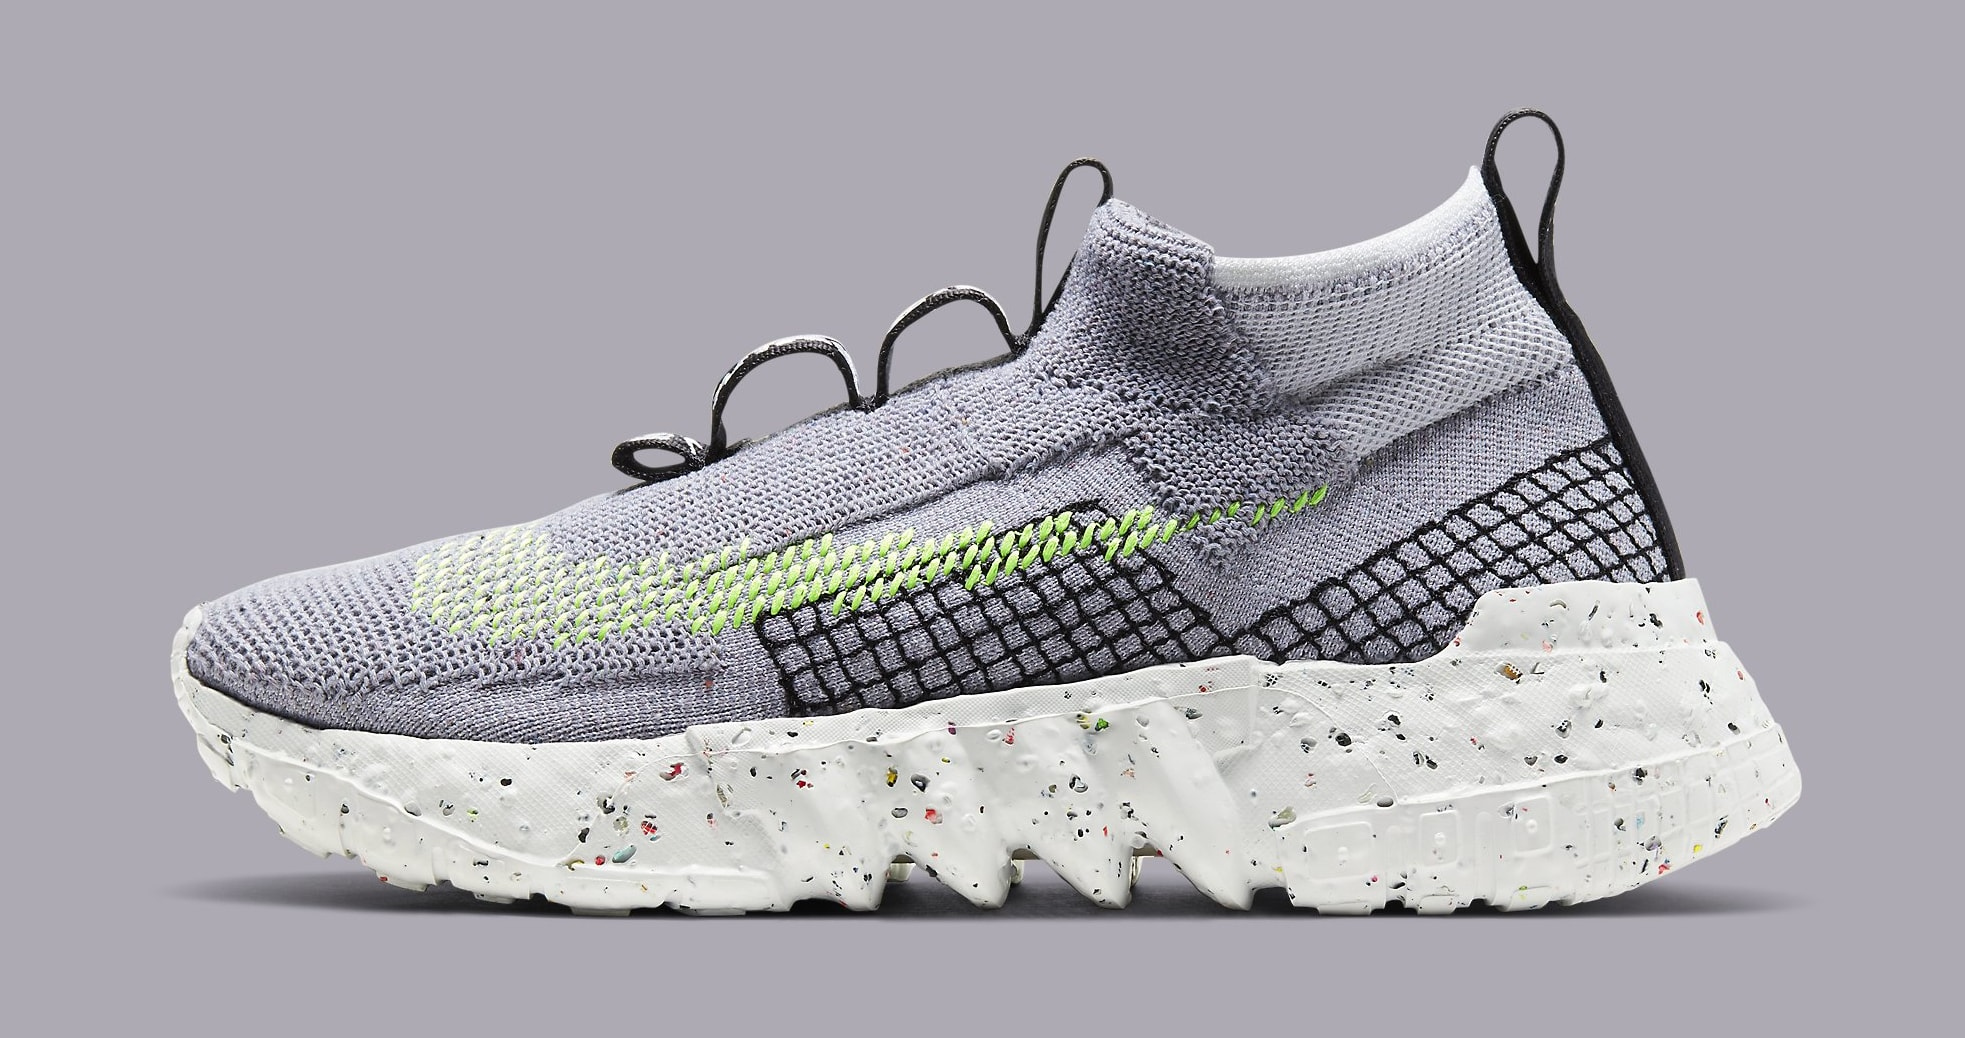 Nike Space Hippie 02 'Grey/Volt' CQ3988-002 Lateral